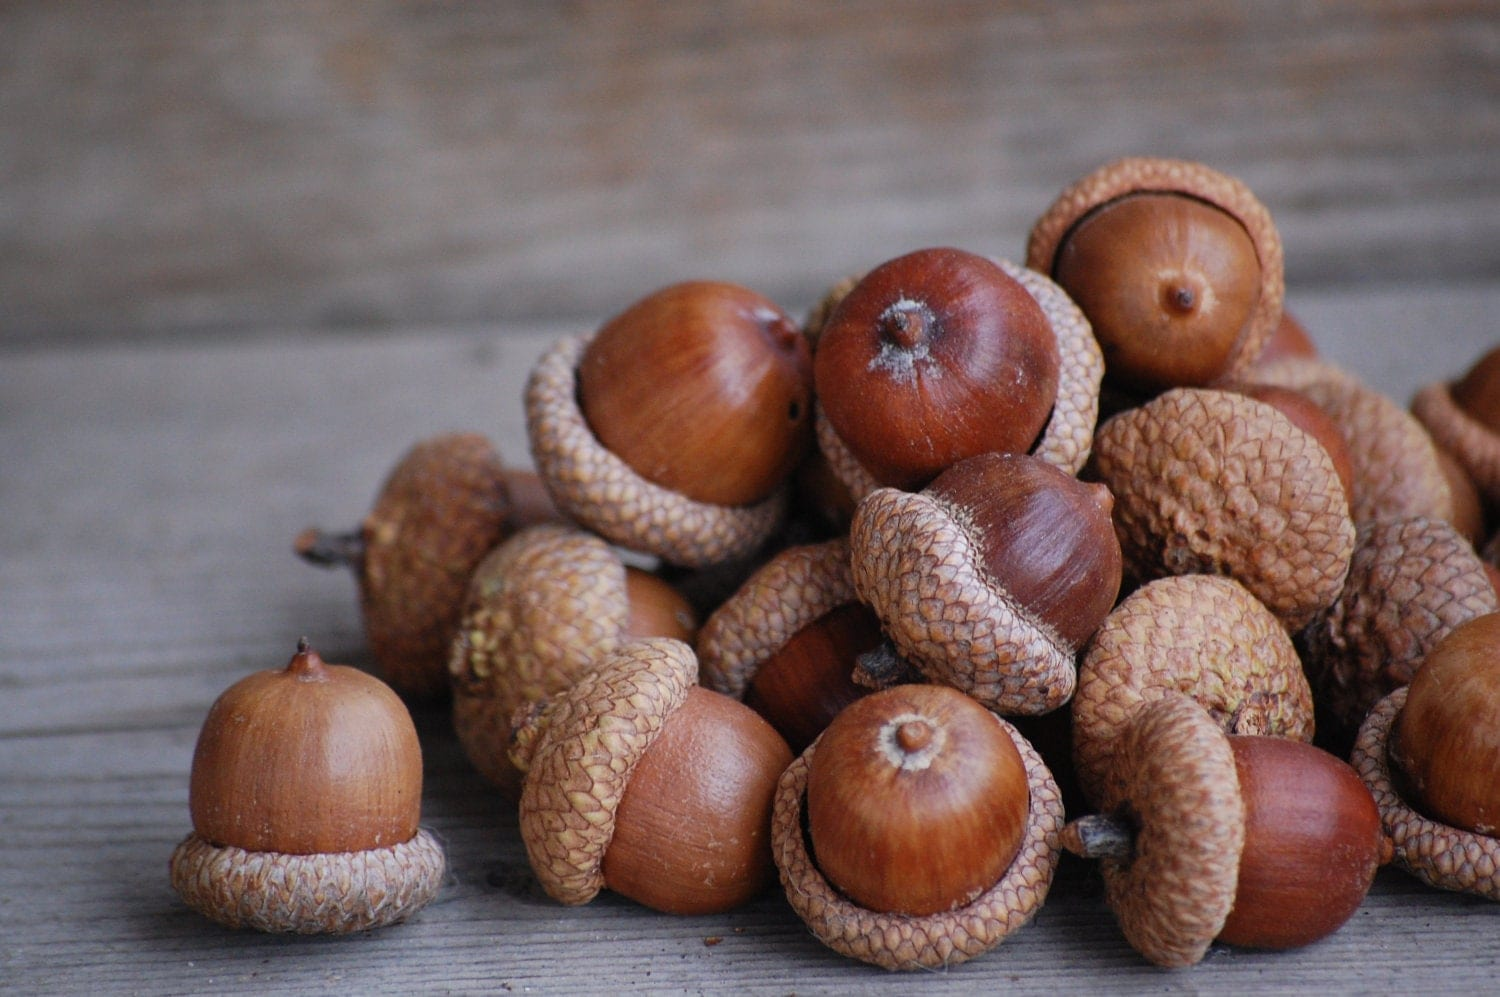 temperate climate permaculture: how to eat acorns